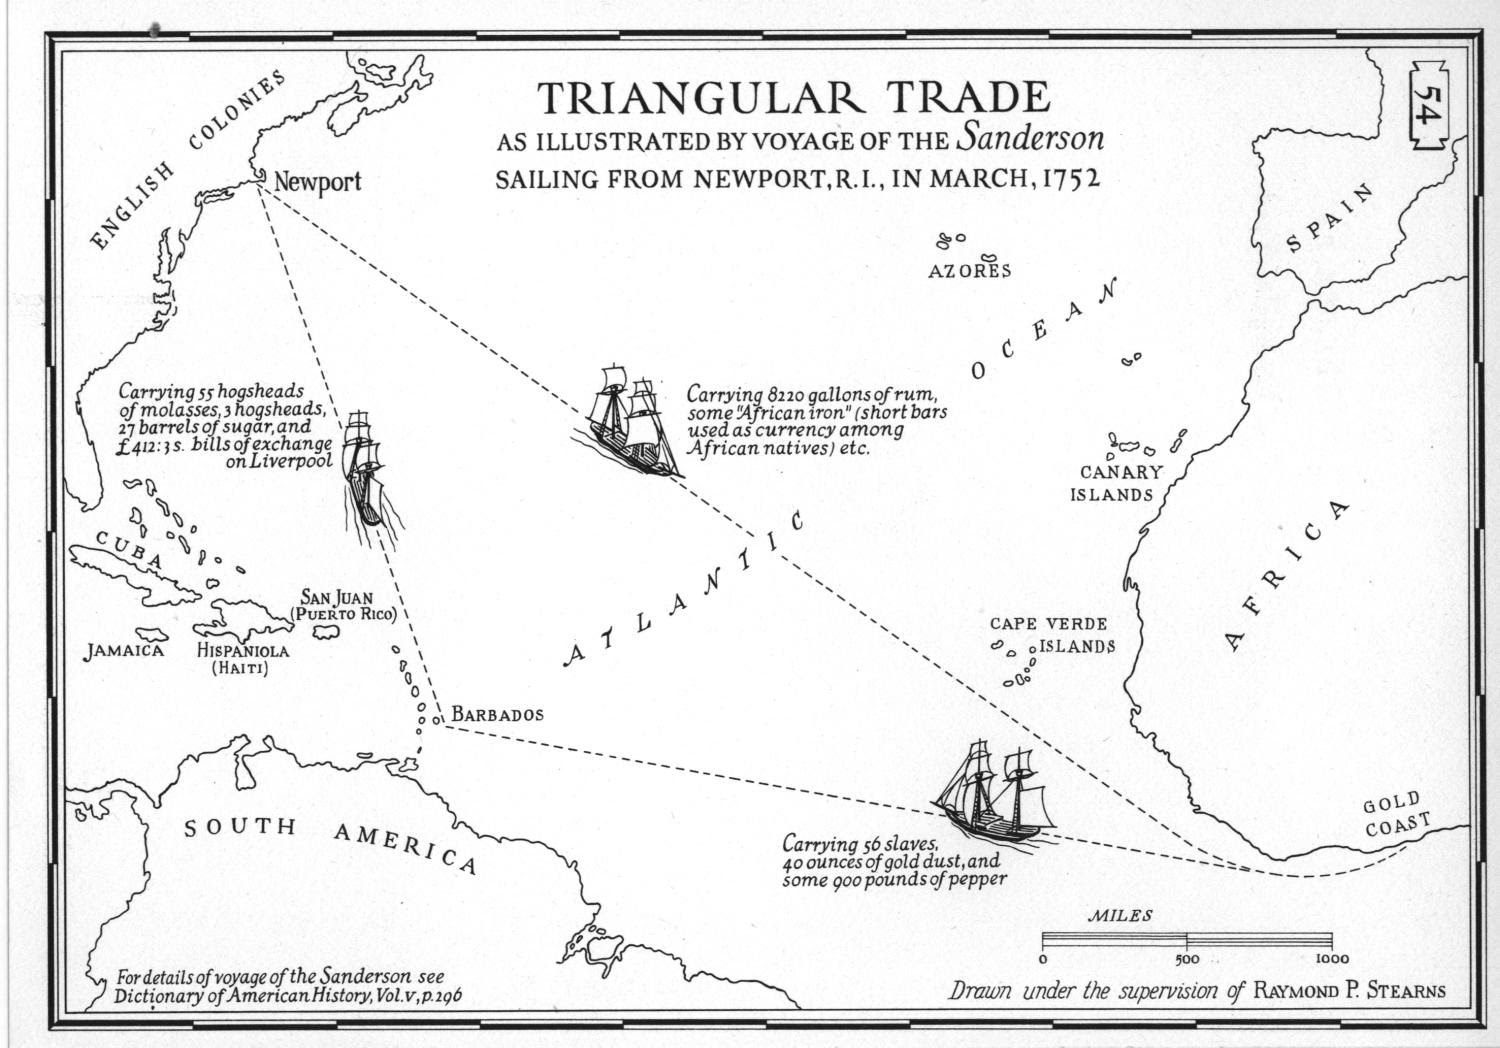 http://www.socialstudiesforkids.com/graphics/triangulartrade.jpg